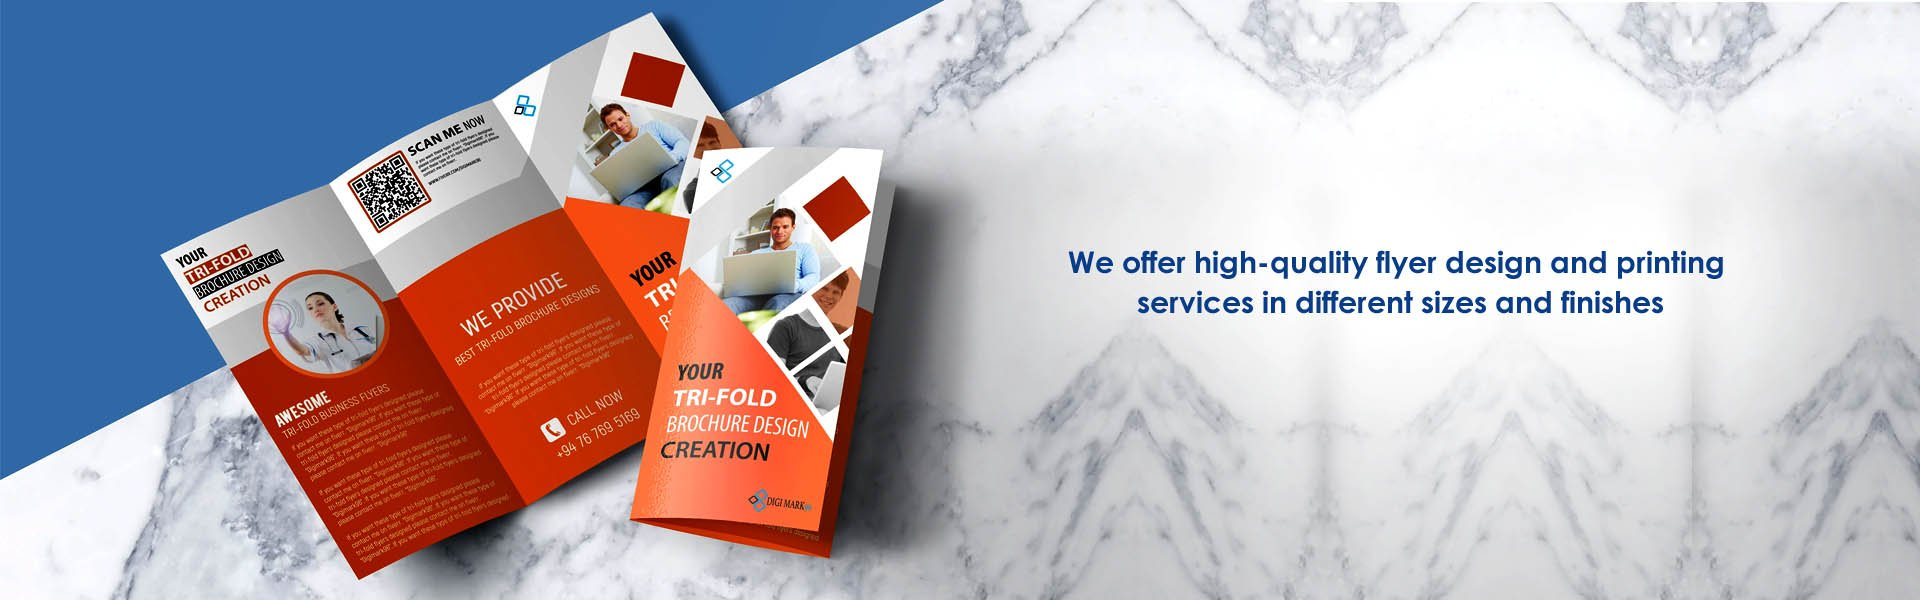 best flyer design and printing services in Boston